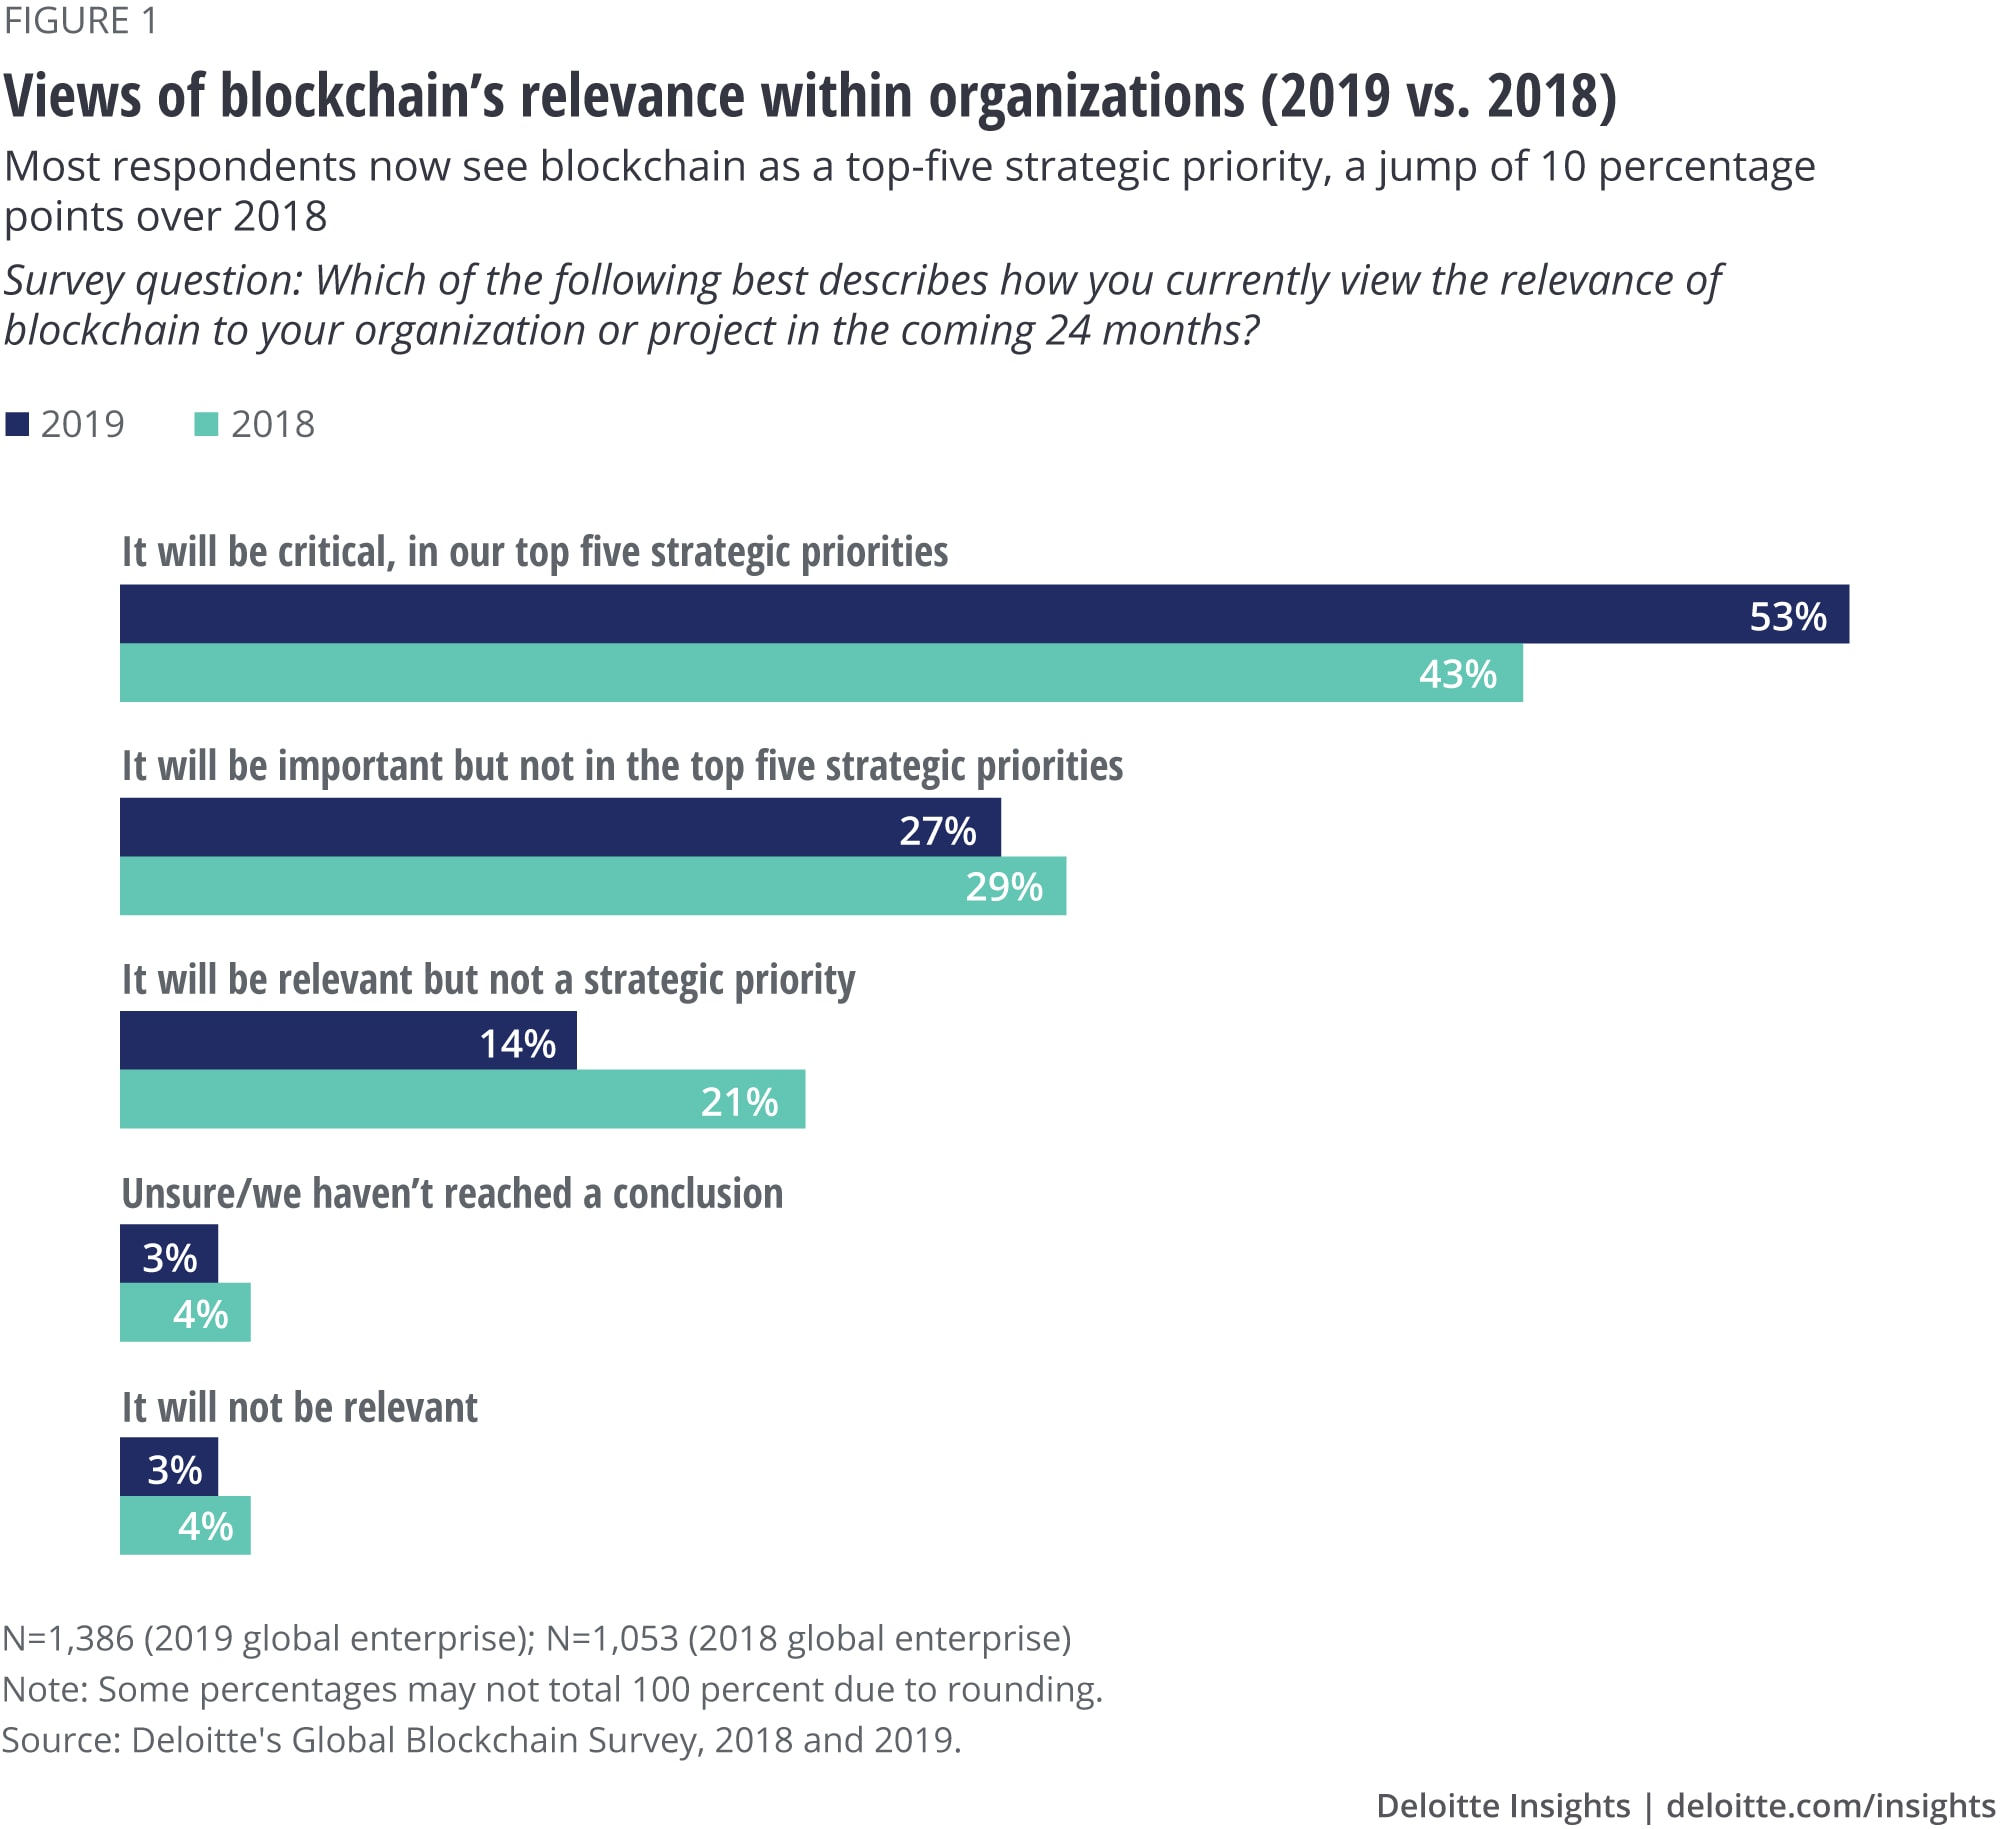 Views of blockchain's relevance within organizations (2019 vs. 2018)